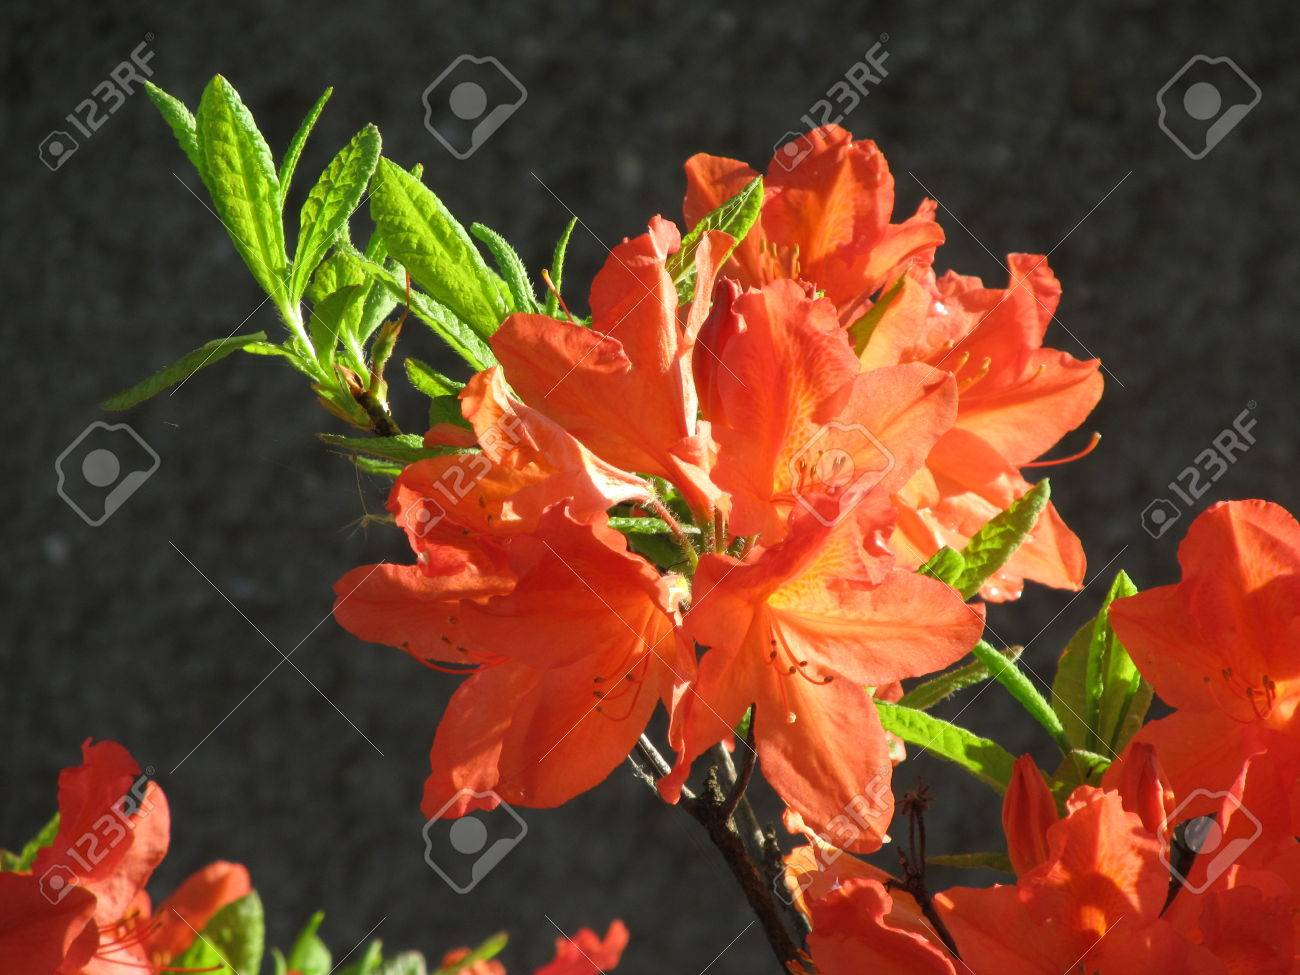 proximite photo de vives fleurs orange d hibiscus exotique